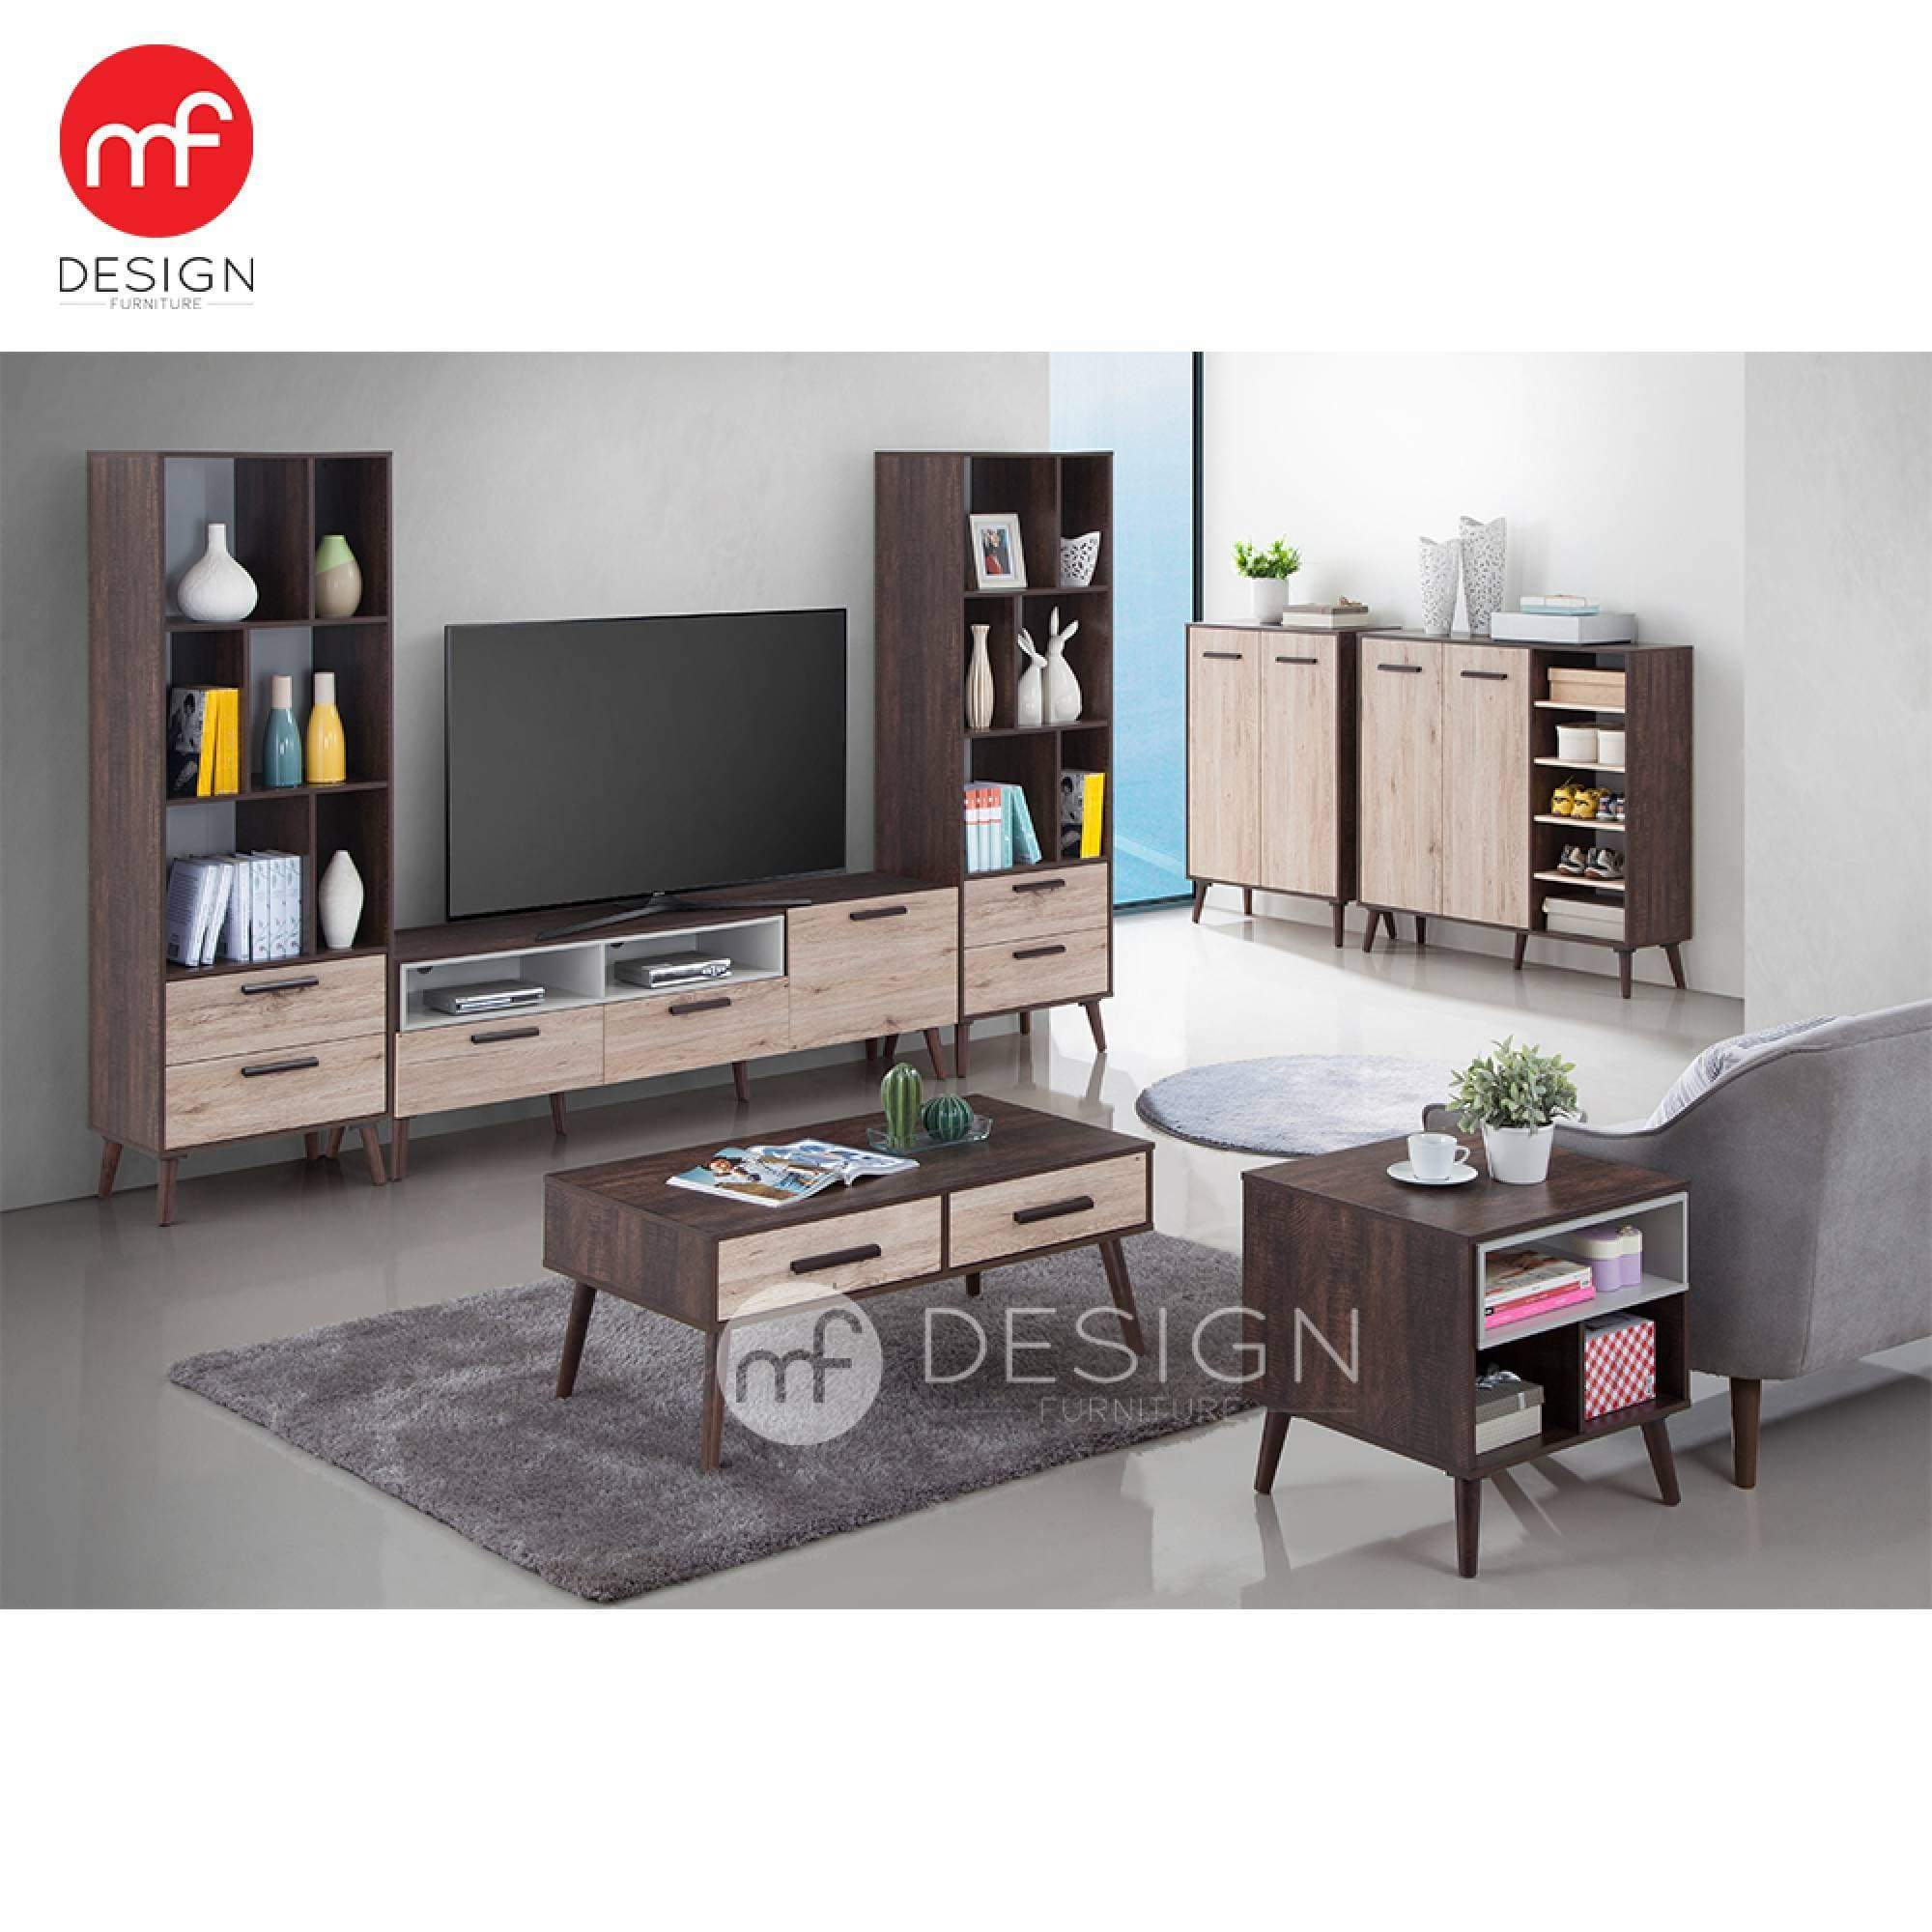 mfdesign88 TV CABINET 6FT MF DESIGN ERIKO TV CABINET 6 FEET